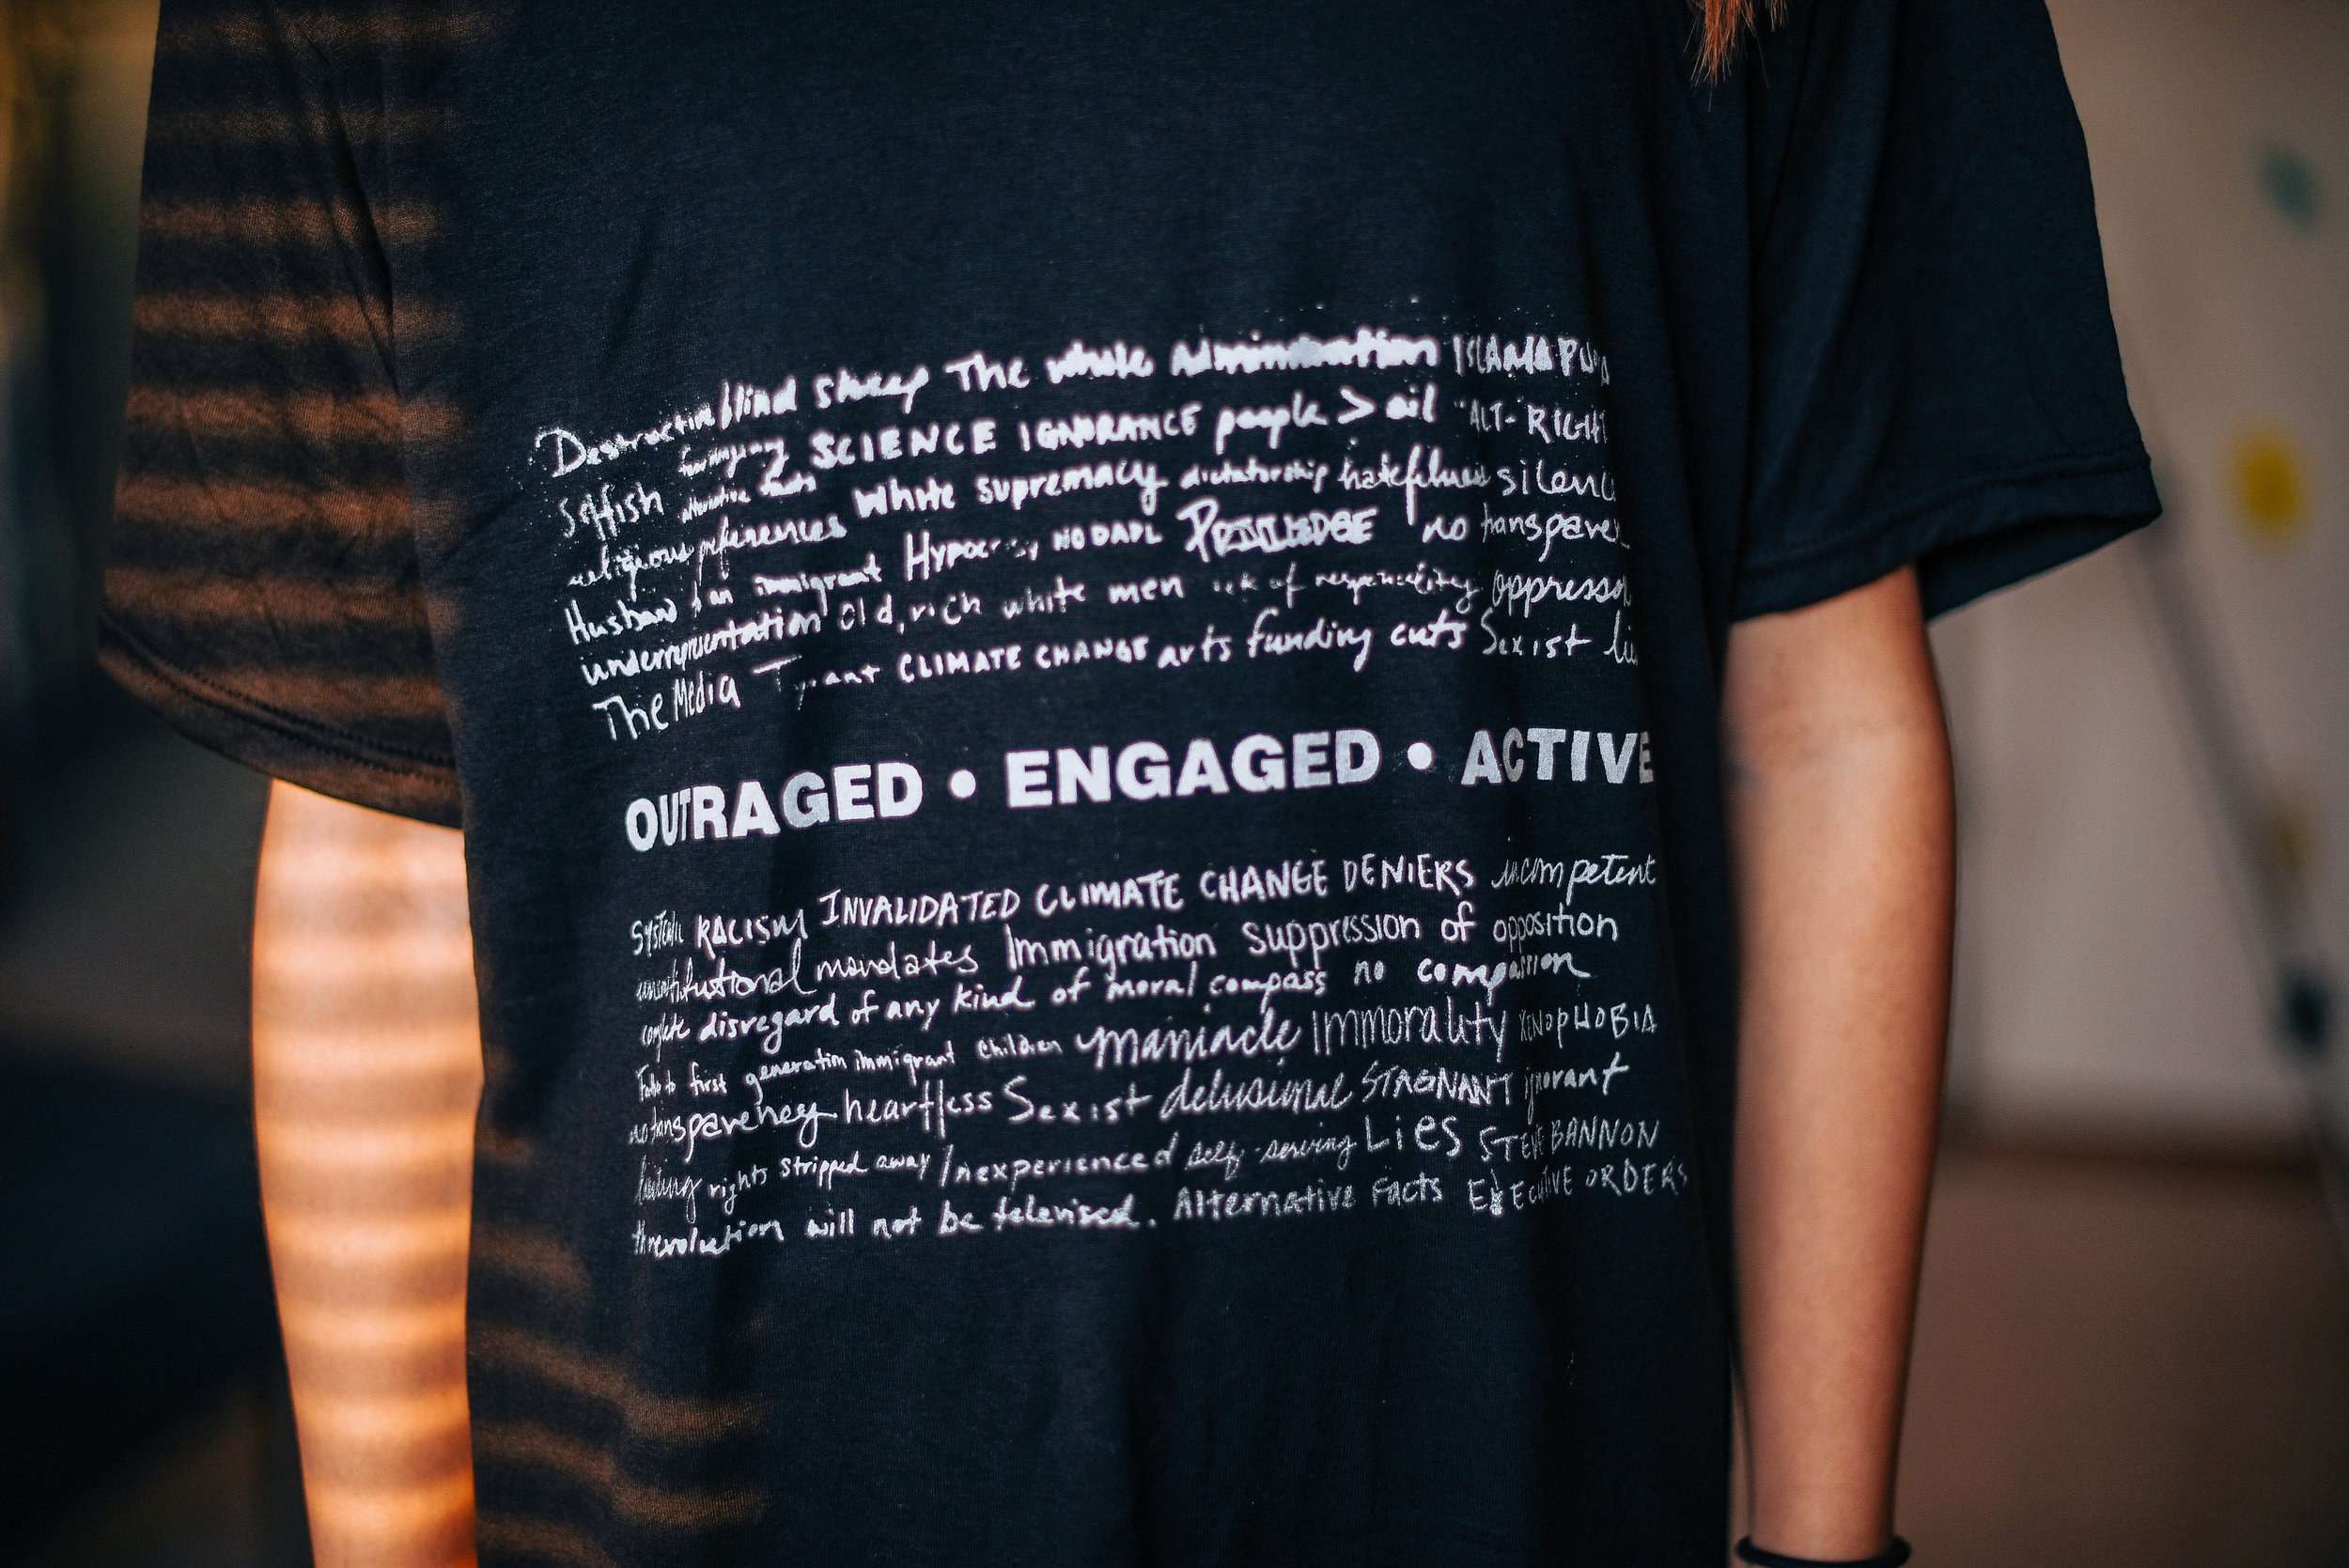 OUTRAGED, ENGAGED, ACTIVE ( quotes ) I encouraged my friends to participate in a project where I asked them to write a few words/reasons why they are outraged in this current political climate. The different handwritten responses are representative of the concerns shared by countless individuals.